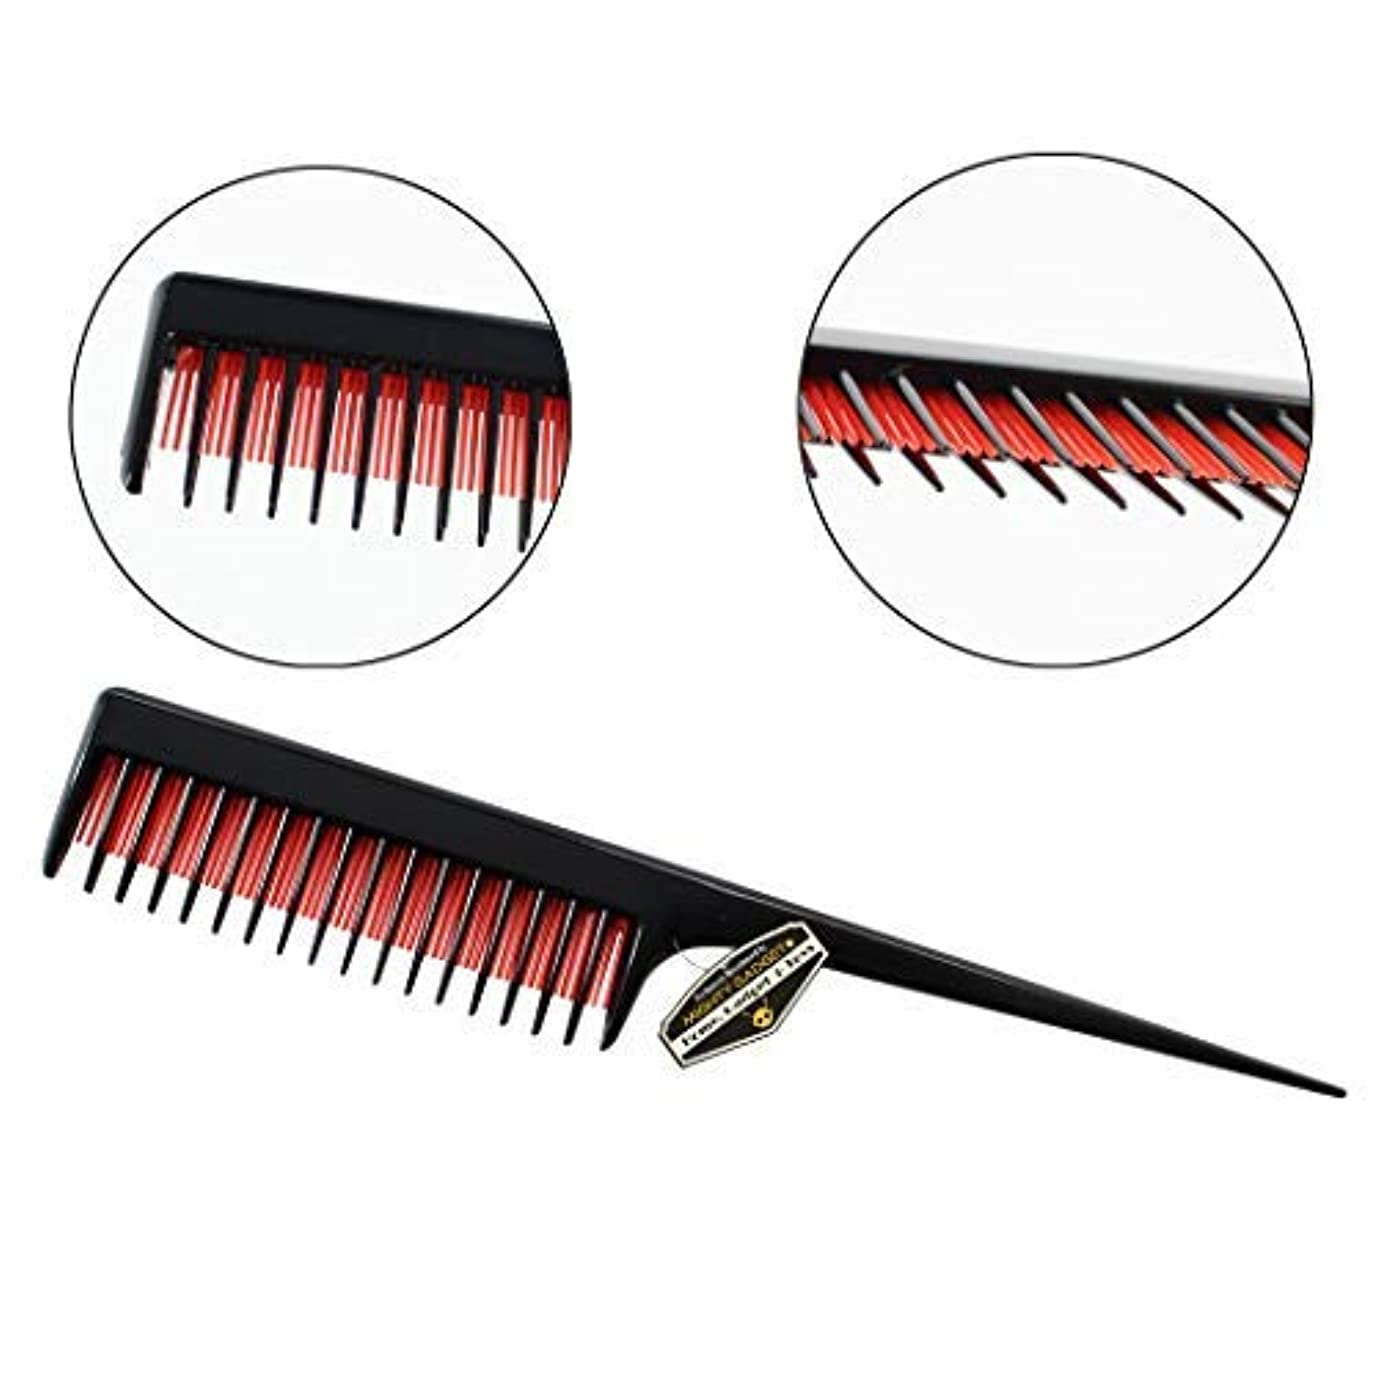 ええ持続するドレインMighty Gadget 8 inch Teasing Comb - Rat Tail Comb for Back Combing, Root Teasing, Adding Volume, Evening Styling for Thin, Fine and Normal Hair Types [並行輸入品]